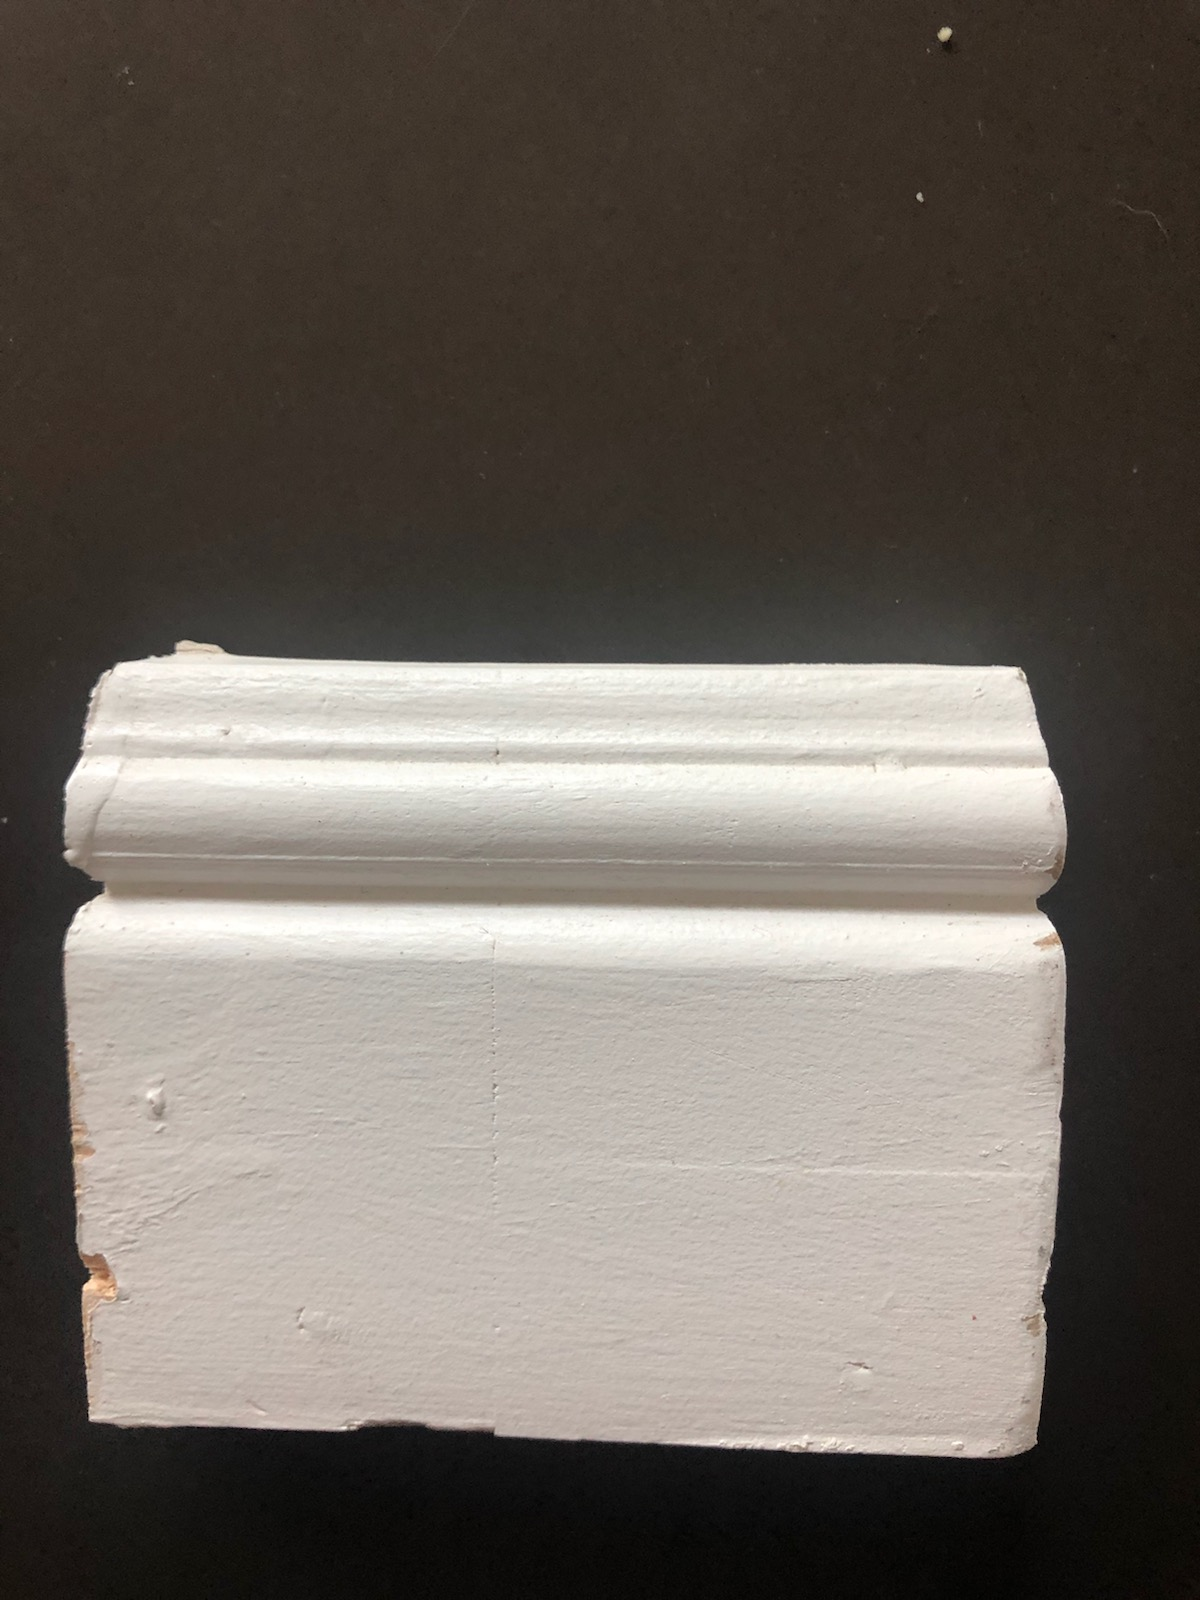 How to Match Base Moulding-img_2885.jpg